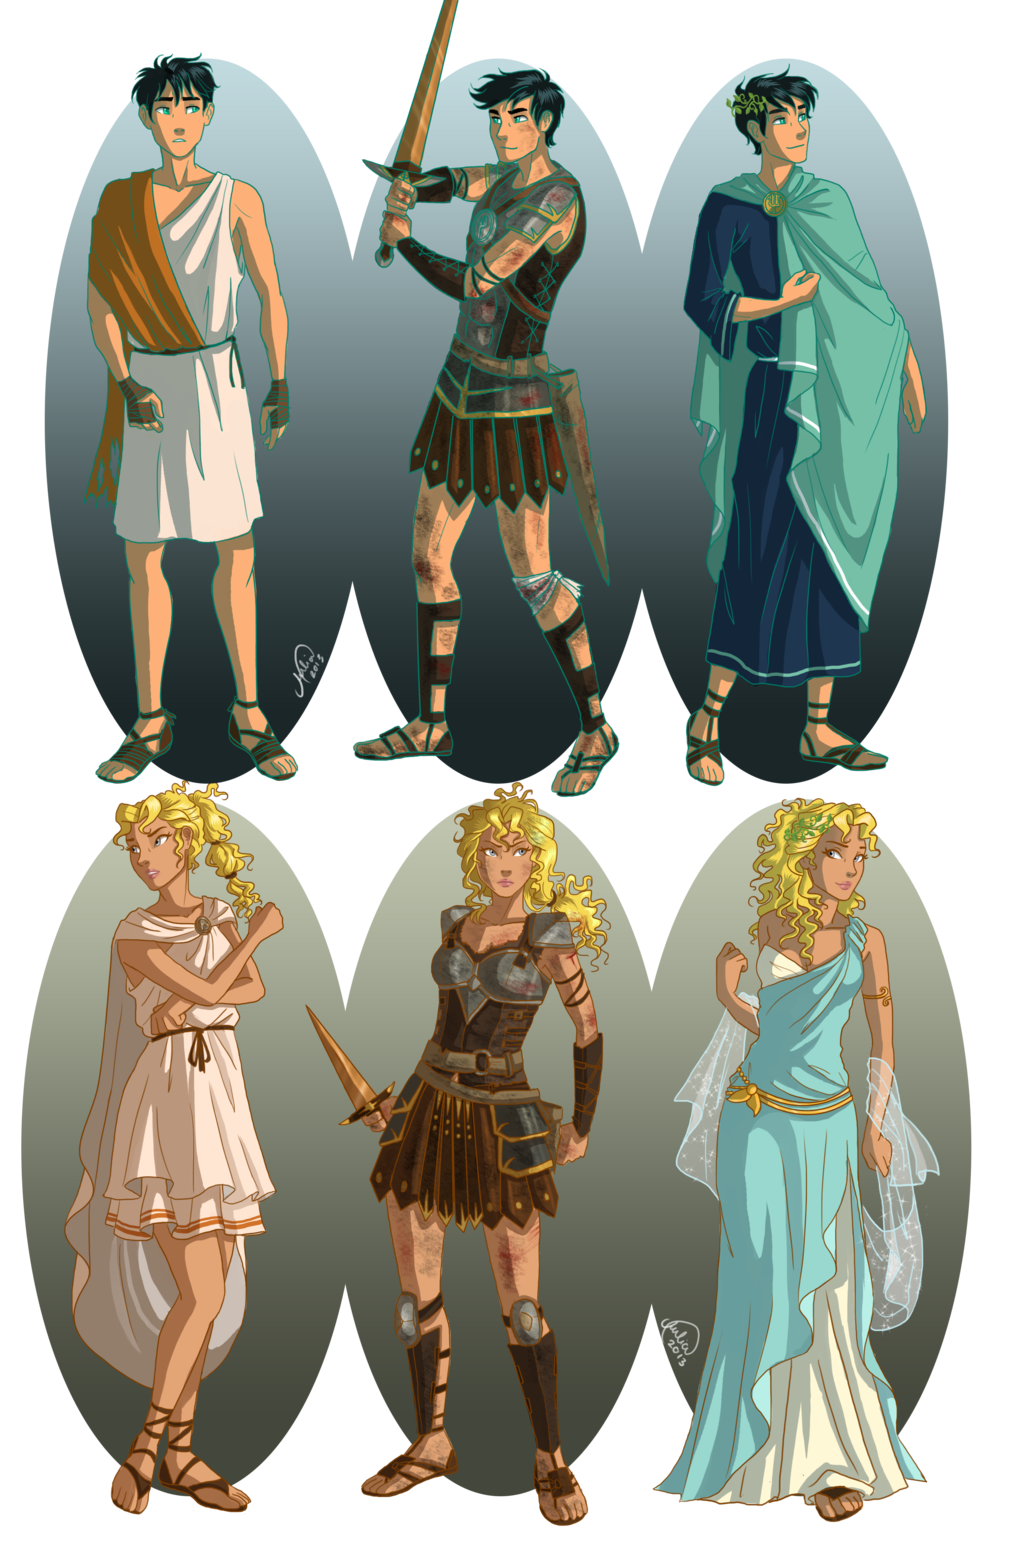 Drawing friendship percy jackson book. Ancient greece by juliajm